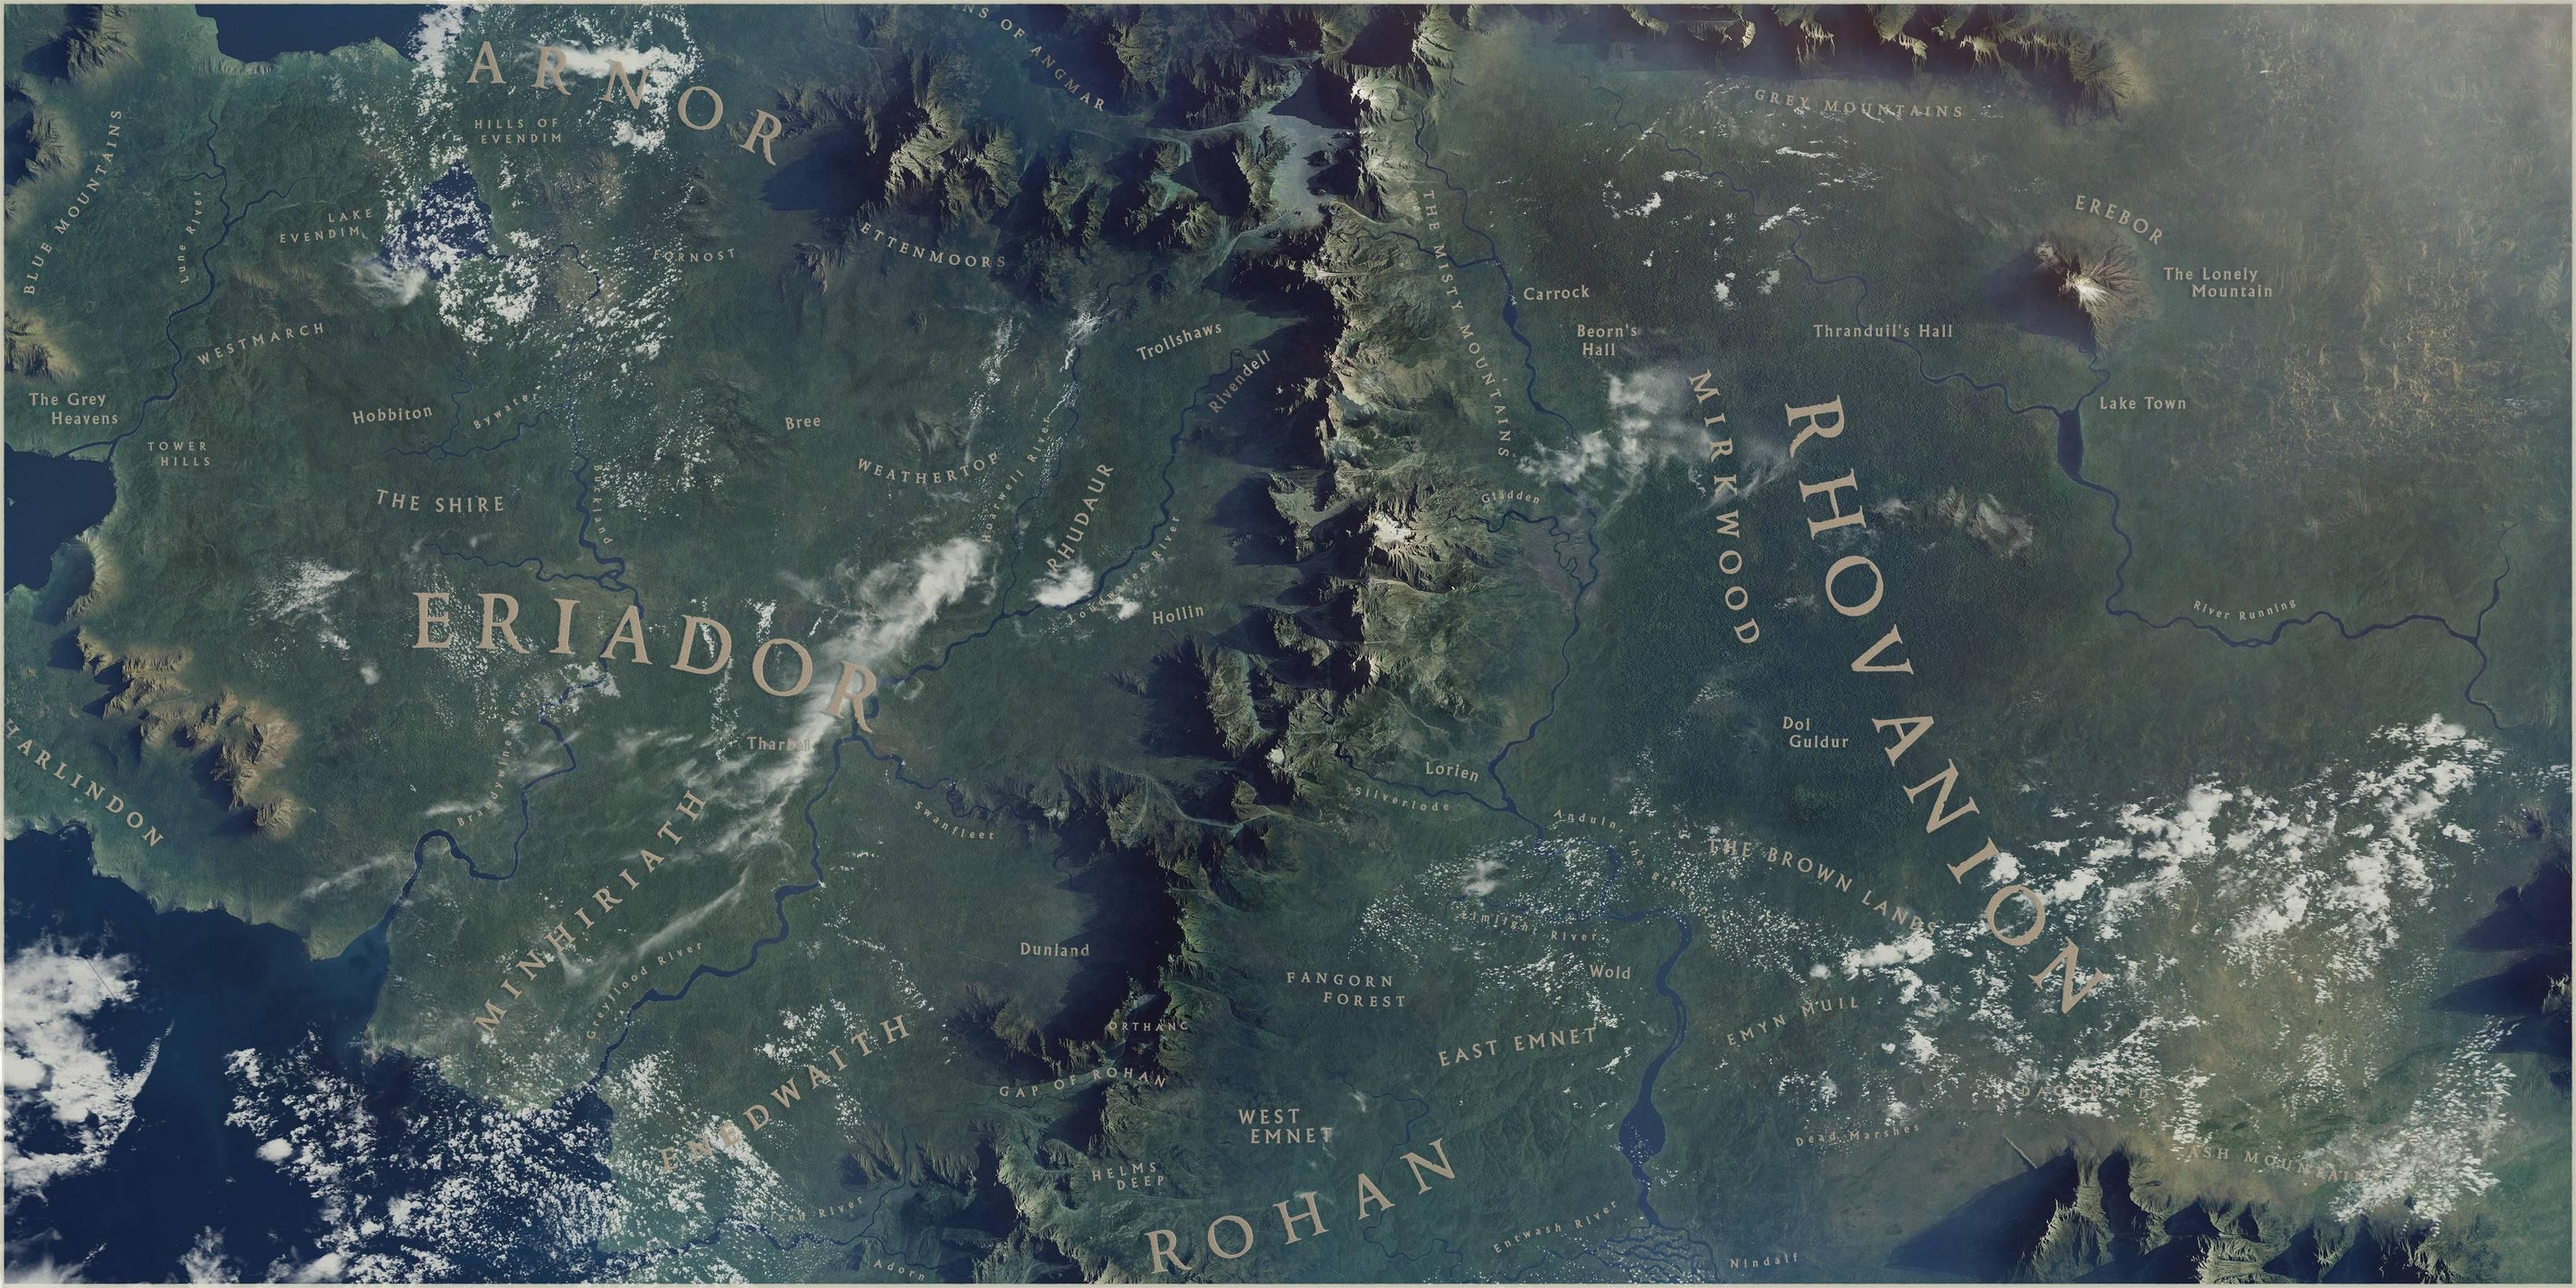 East Middle Earth Map%0A Ruins of Gondolin by Grrrod on deviantART   Of Gondolin   Pinterest    Tolkien  Middle earth and LOTR